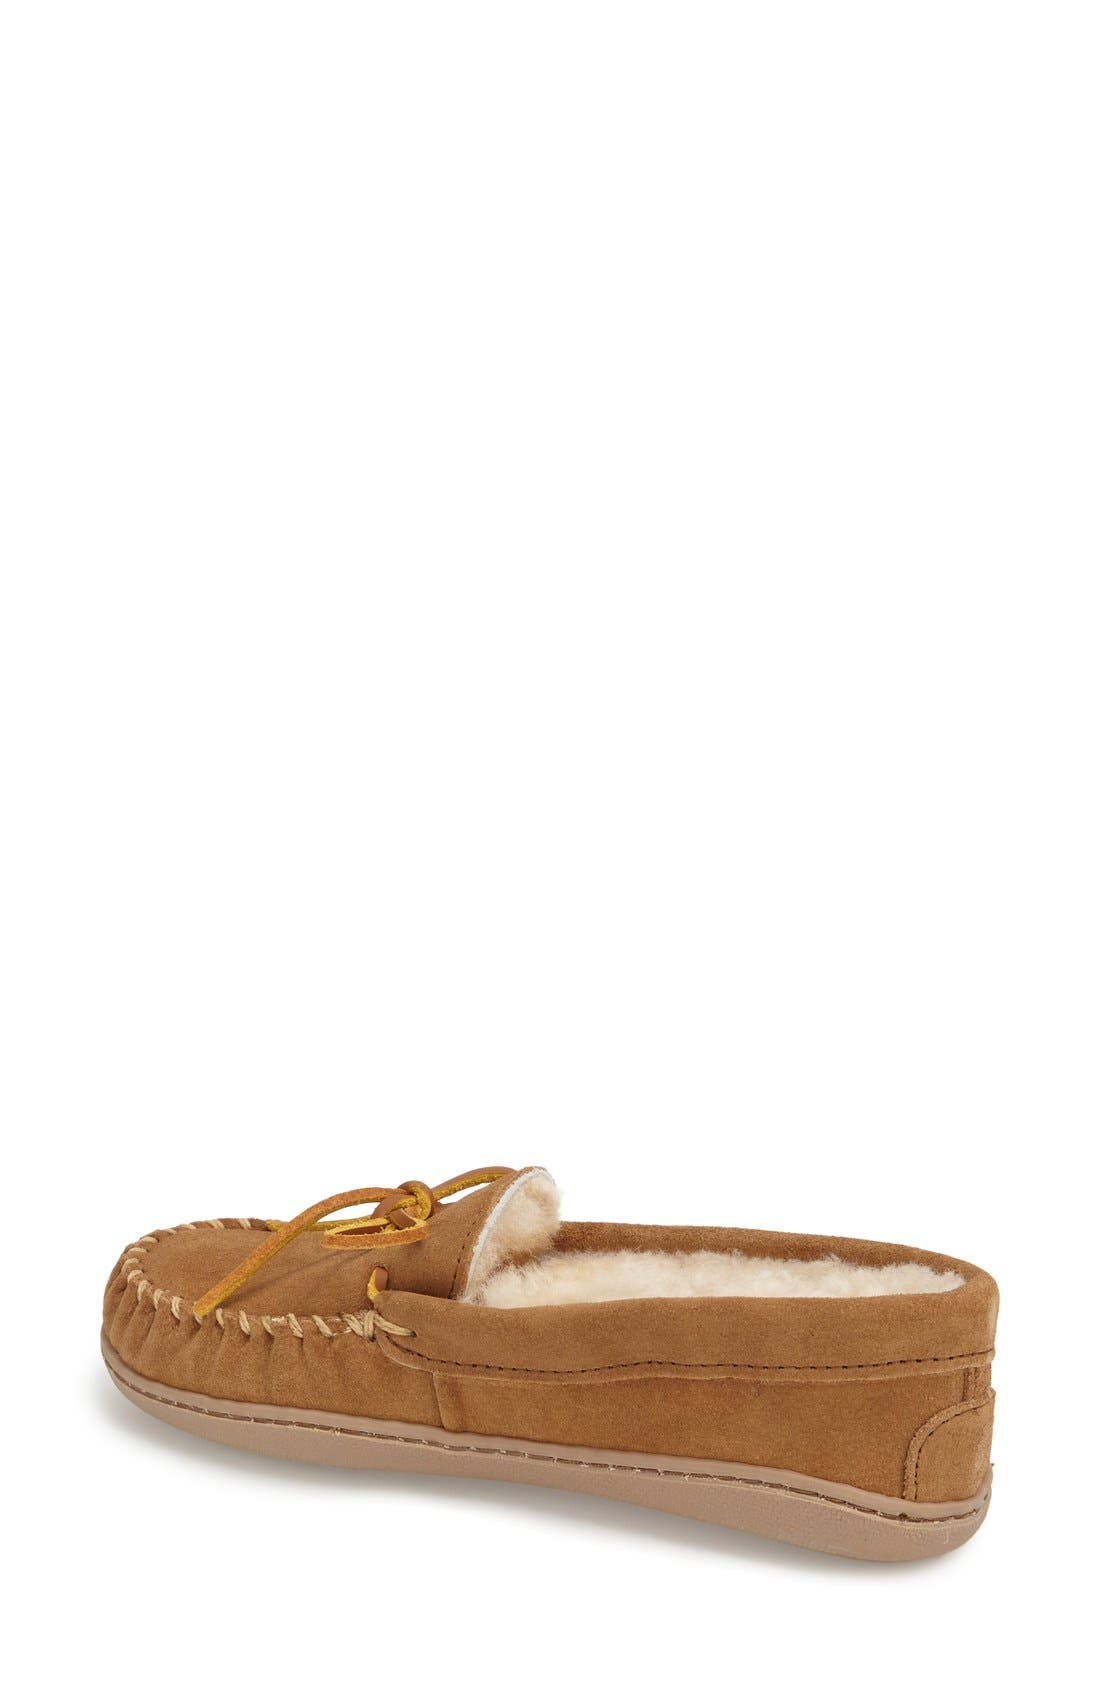 MINNETONKA, Sheepskin Hard Sole Moccasin Slipper, Alternate thumbnail 6, color, TAN SUEDE